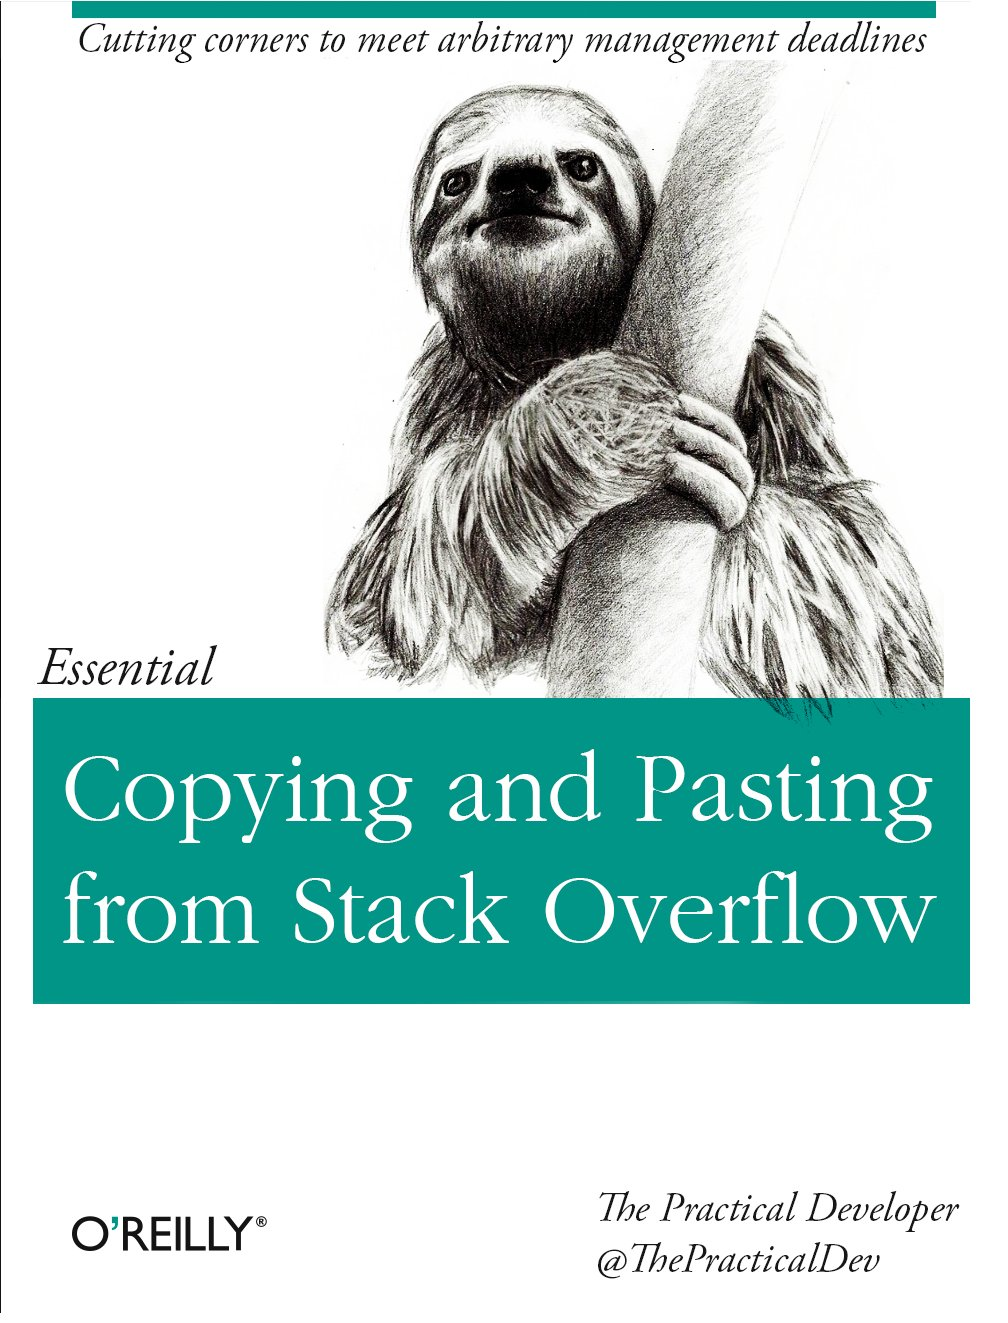 orly-stack-overflow